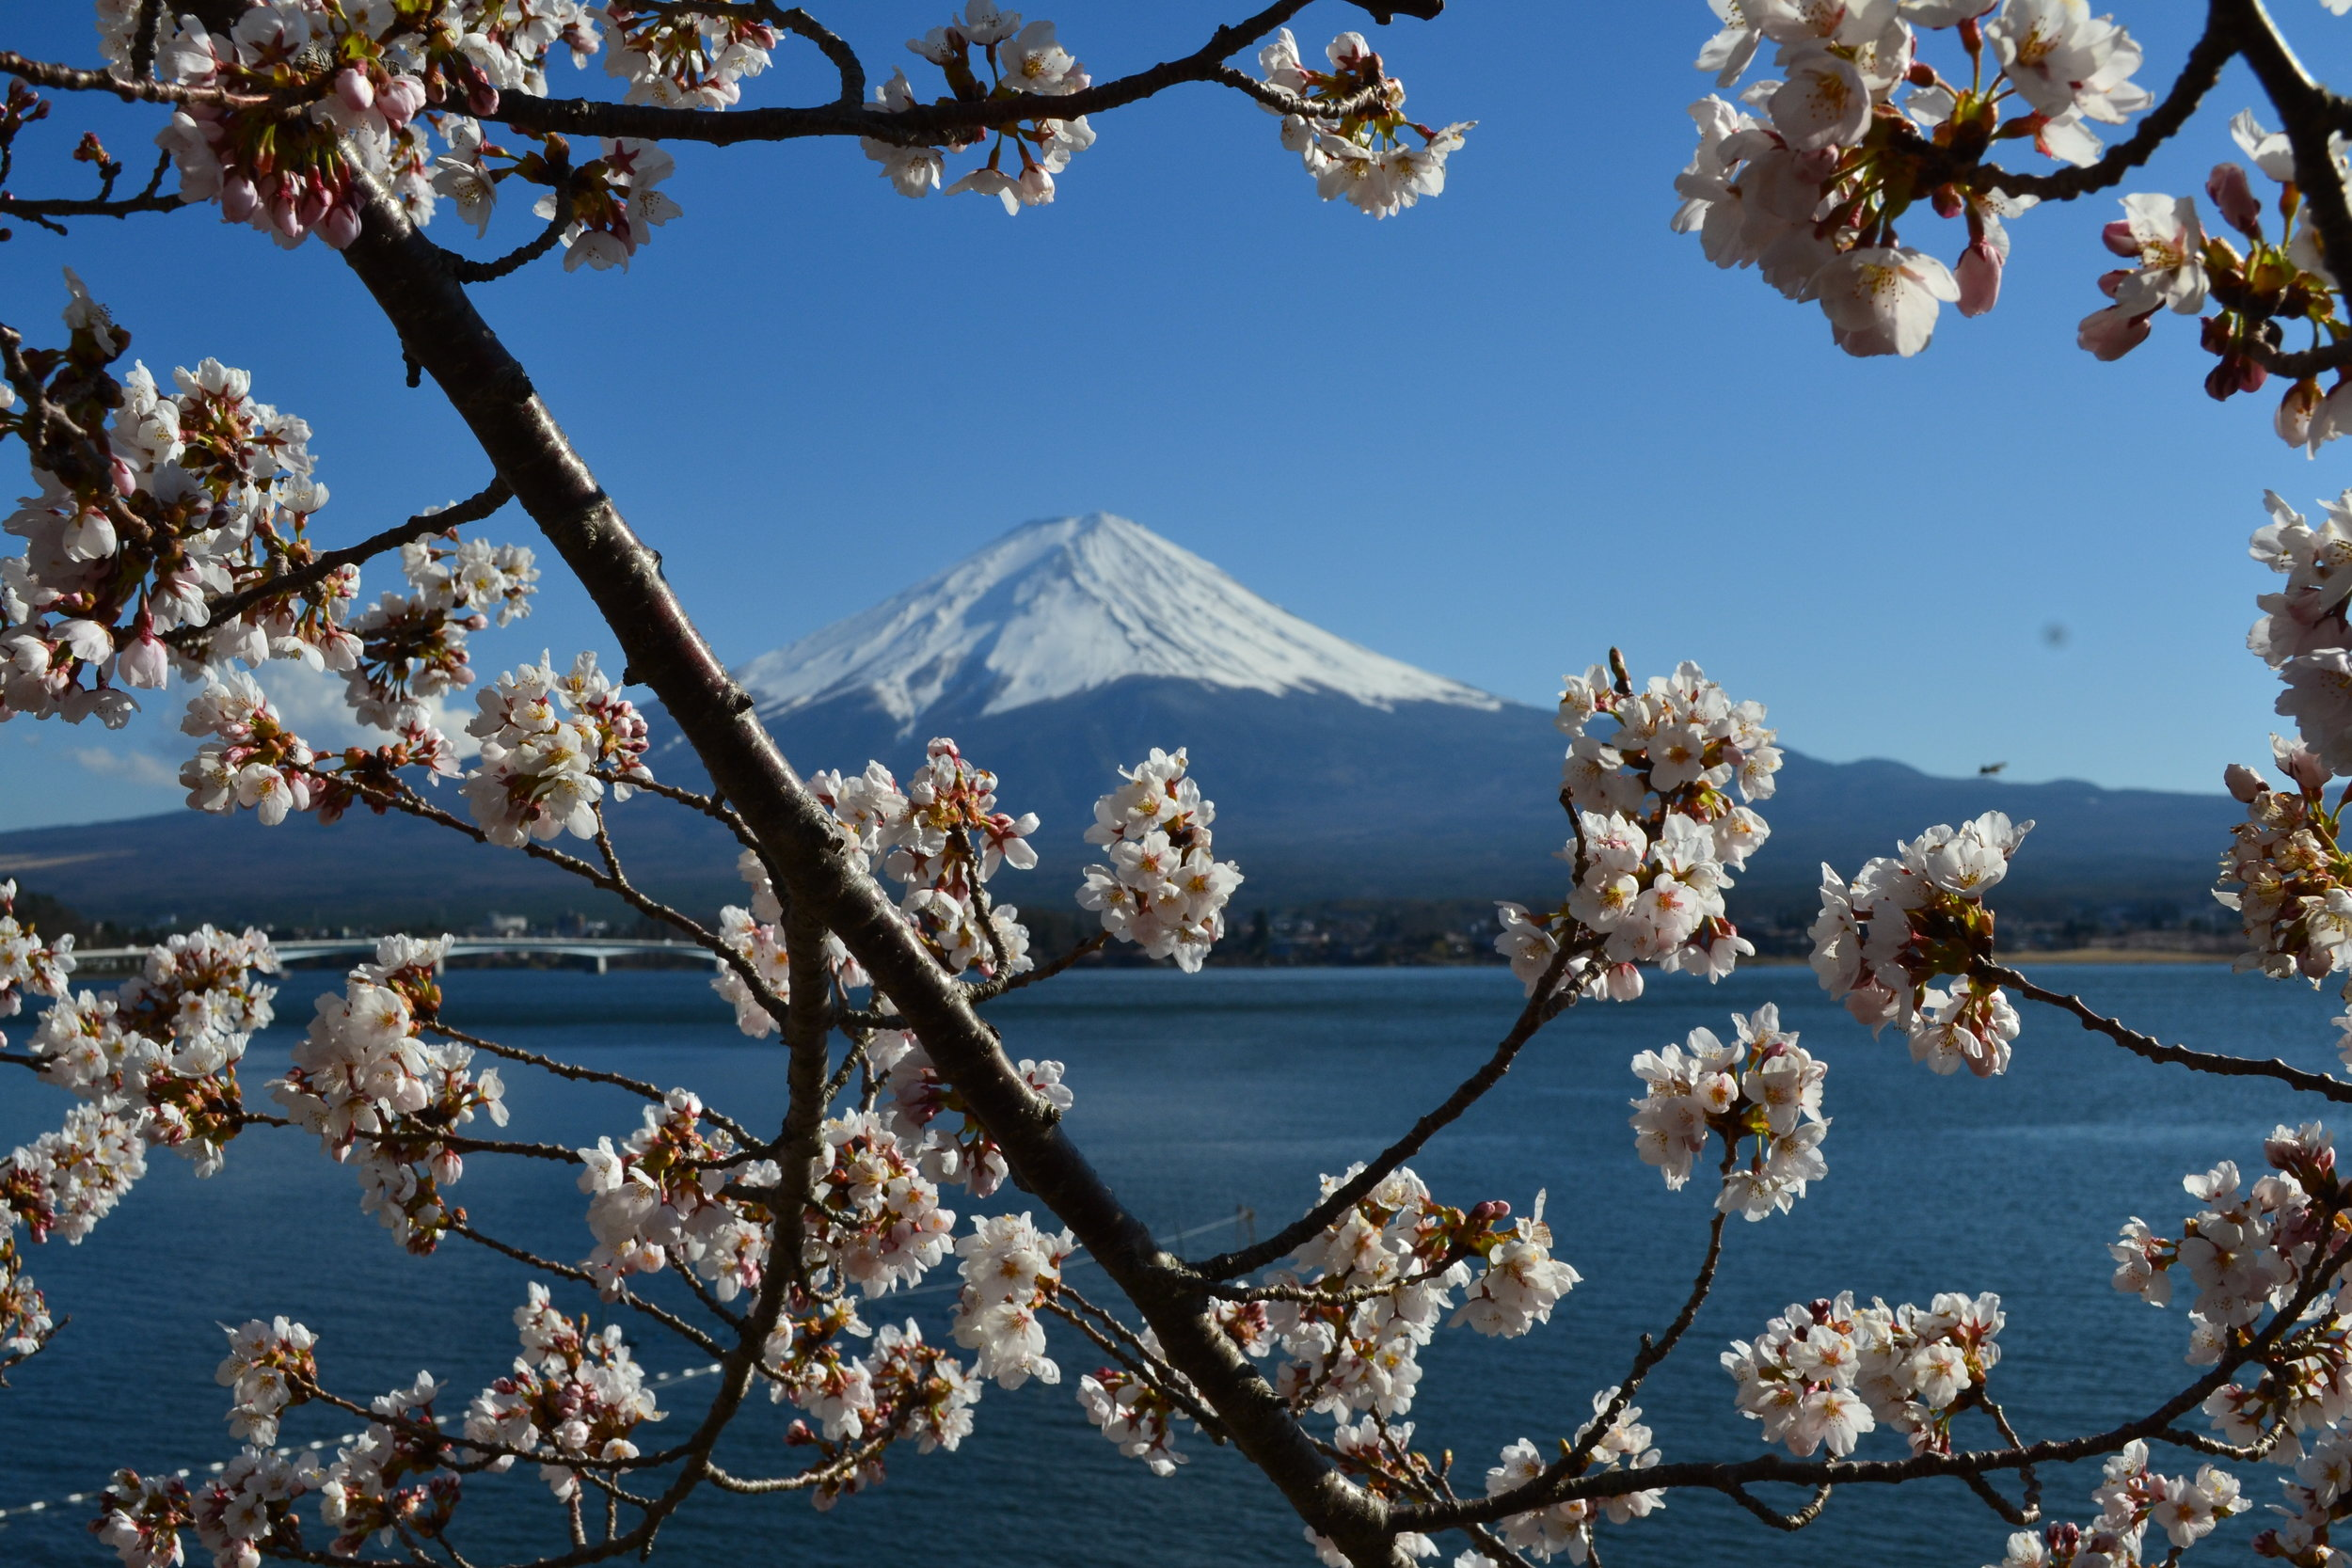 A view of Mount Fuji and the cherry blossoms around Lake Kawaguchi. This is one of my favorite snapshots of the whole trip. There were quite a few people lining up to take a similar shot, so I'm glad I got to get one as well.